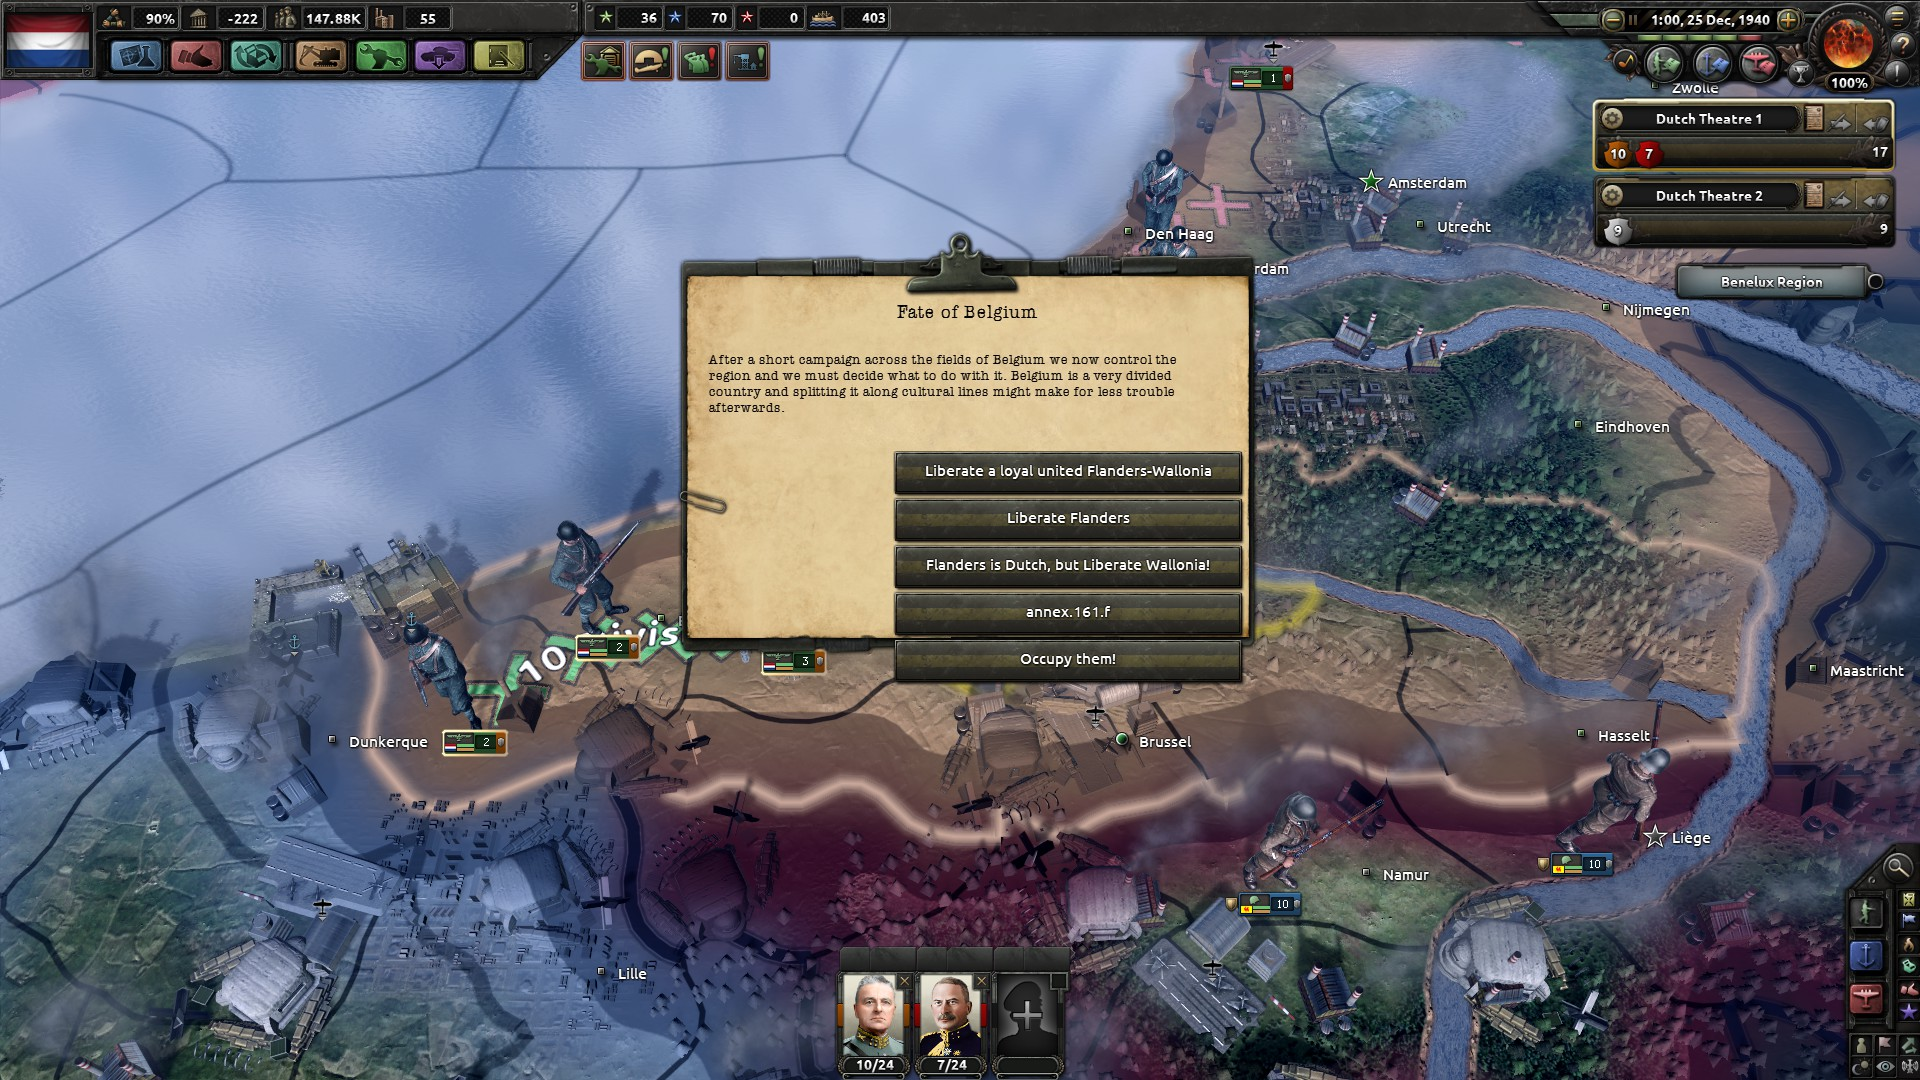 peaceful annexation of Flanders bug · Issue #564 · KR4